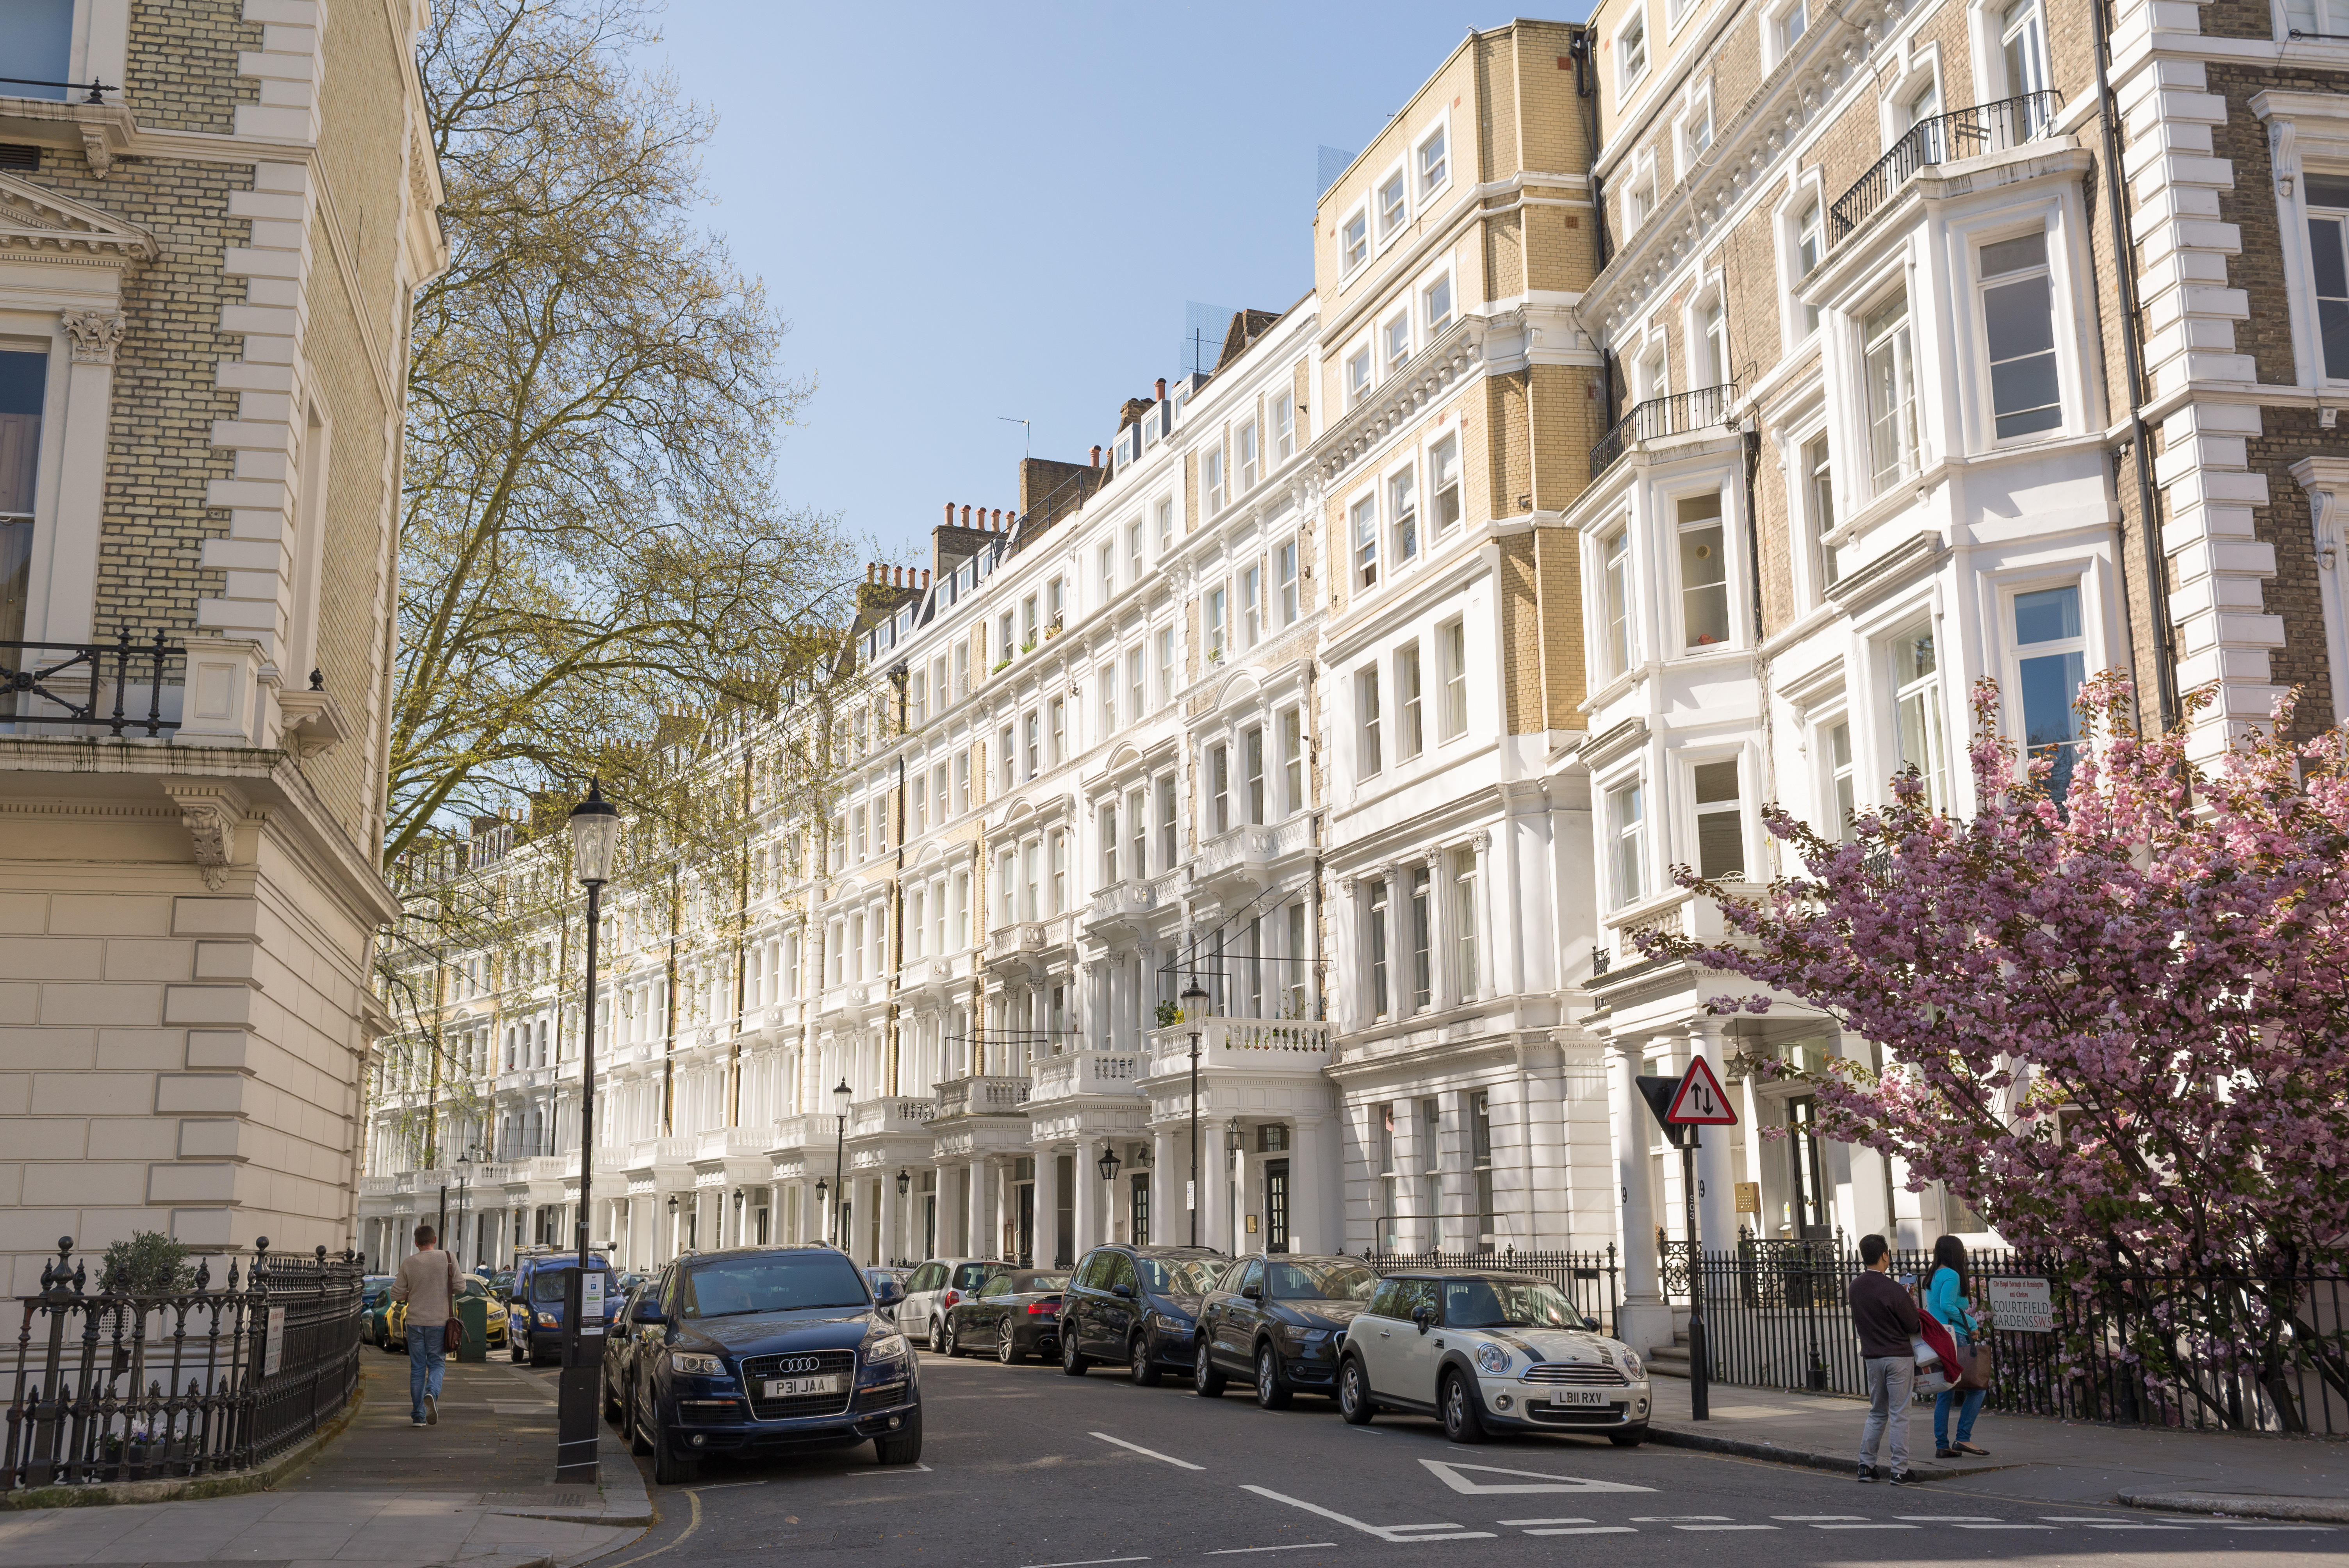 View of street with restored elegant Victorian Edwardian luxury houses in the exclusive area of South Kensington, London, UK